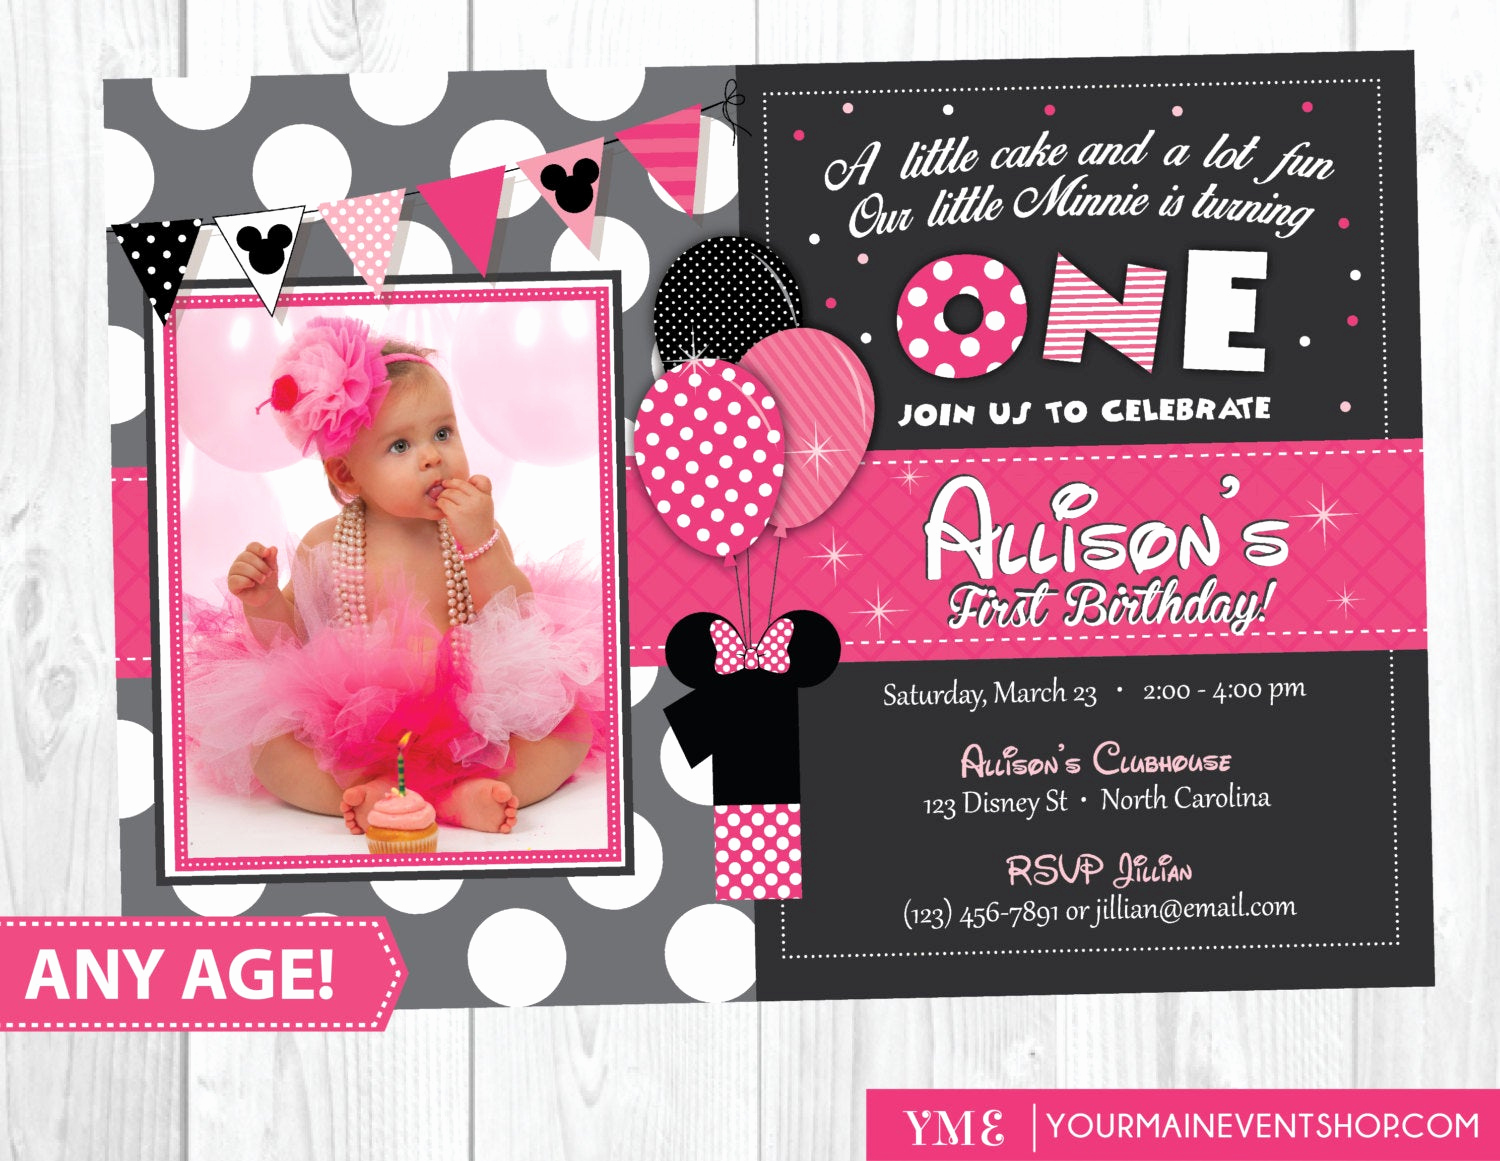 Minnie Mouse Invitation Card Best Of Minnie Mouse Birthday Invitation Minnie Mouse Inspired